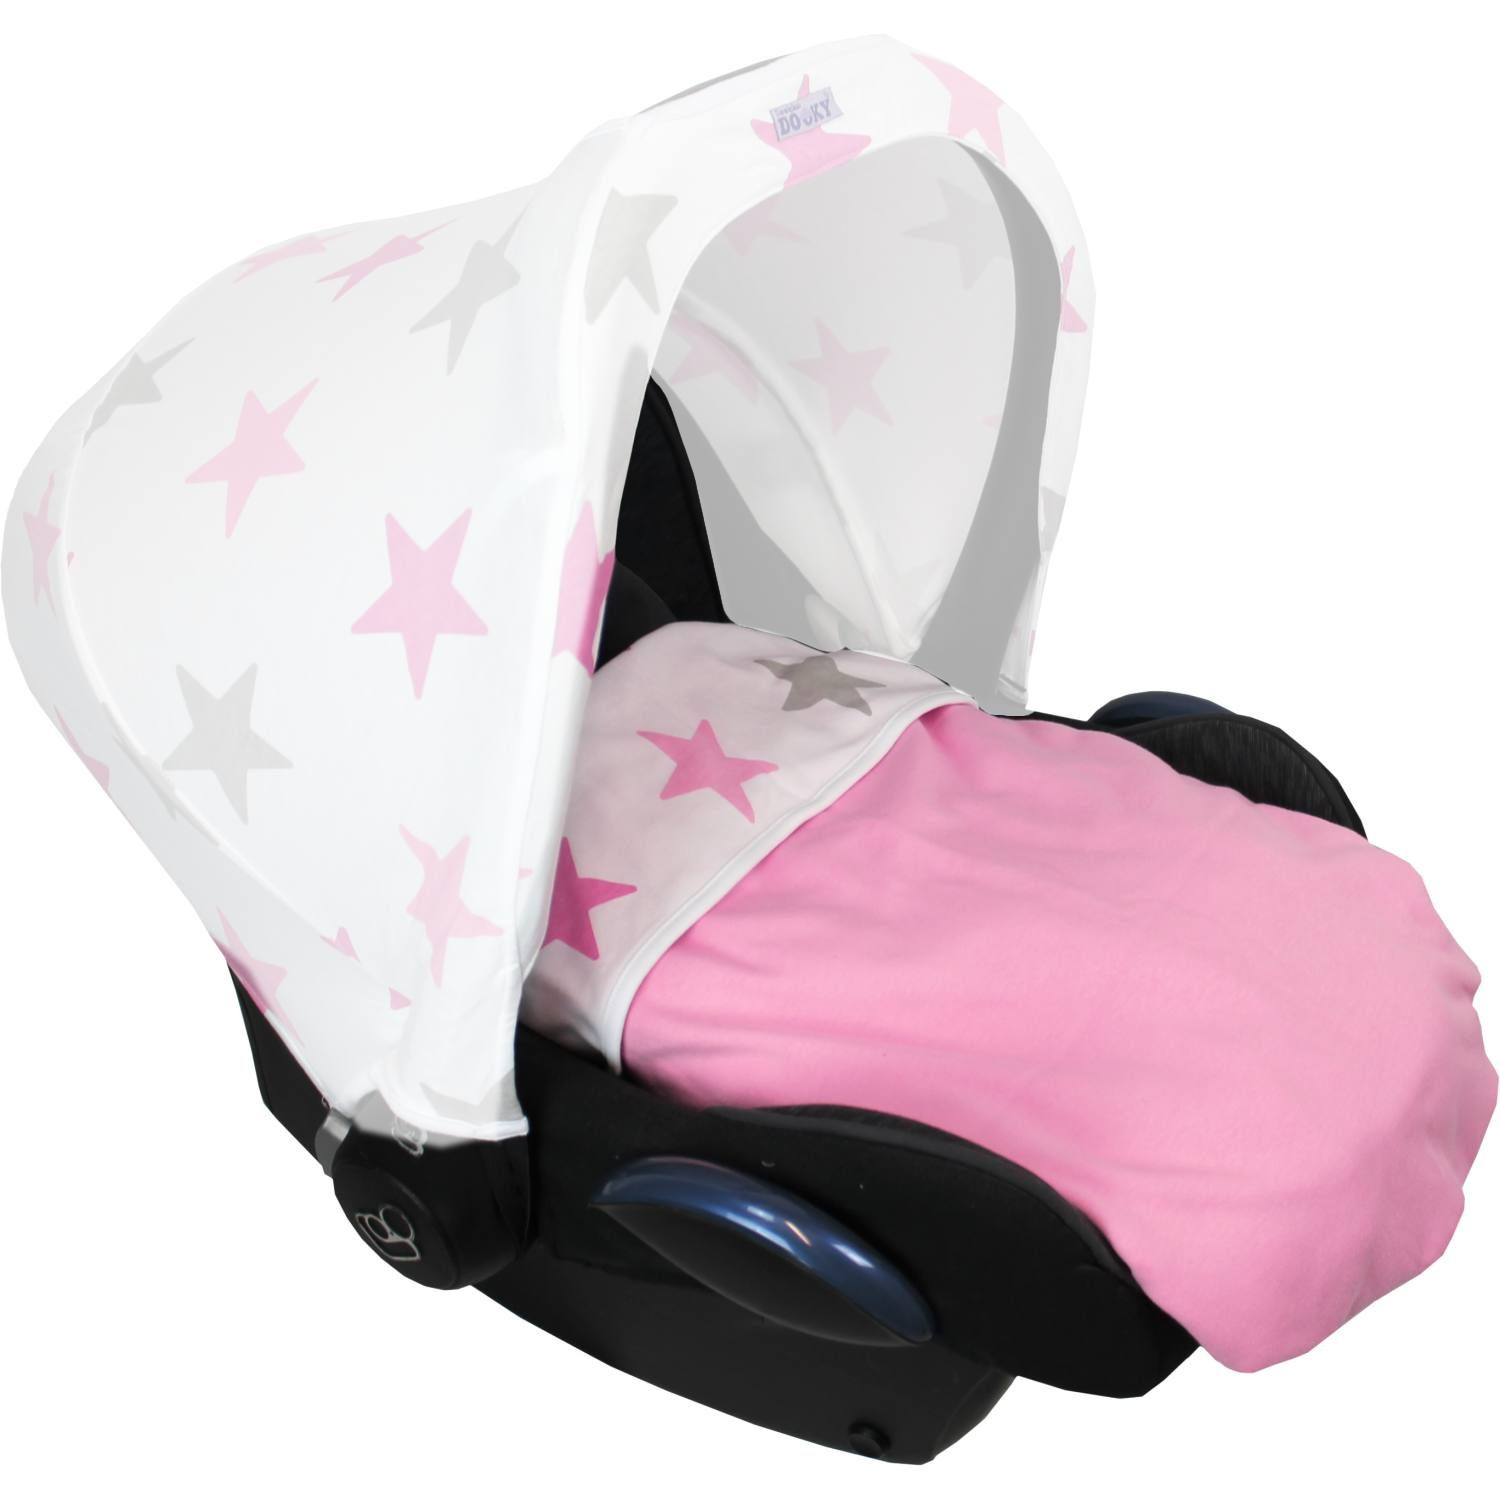 Dooky Blanket 100% Pure Luxurious Cotton Eco-Friendly- Choose your design - Baby Pink/Pink Stars